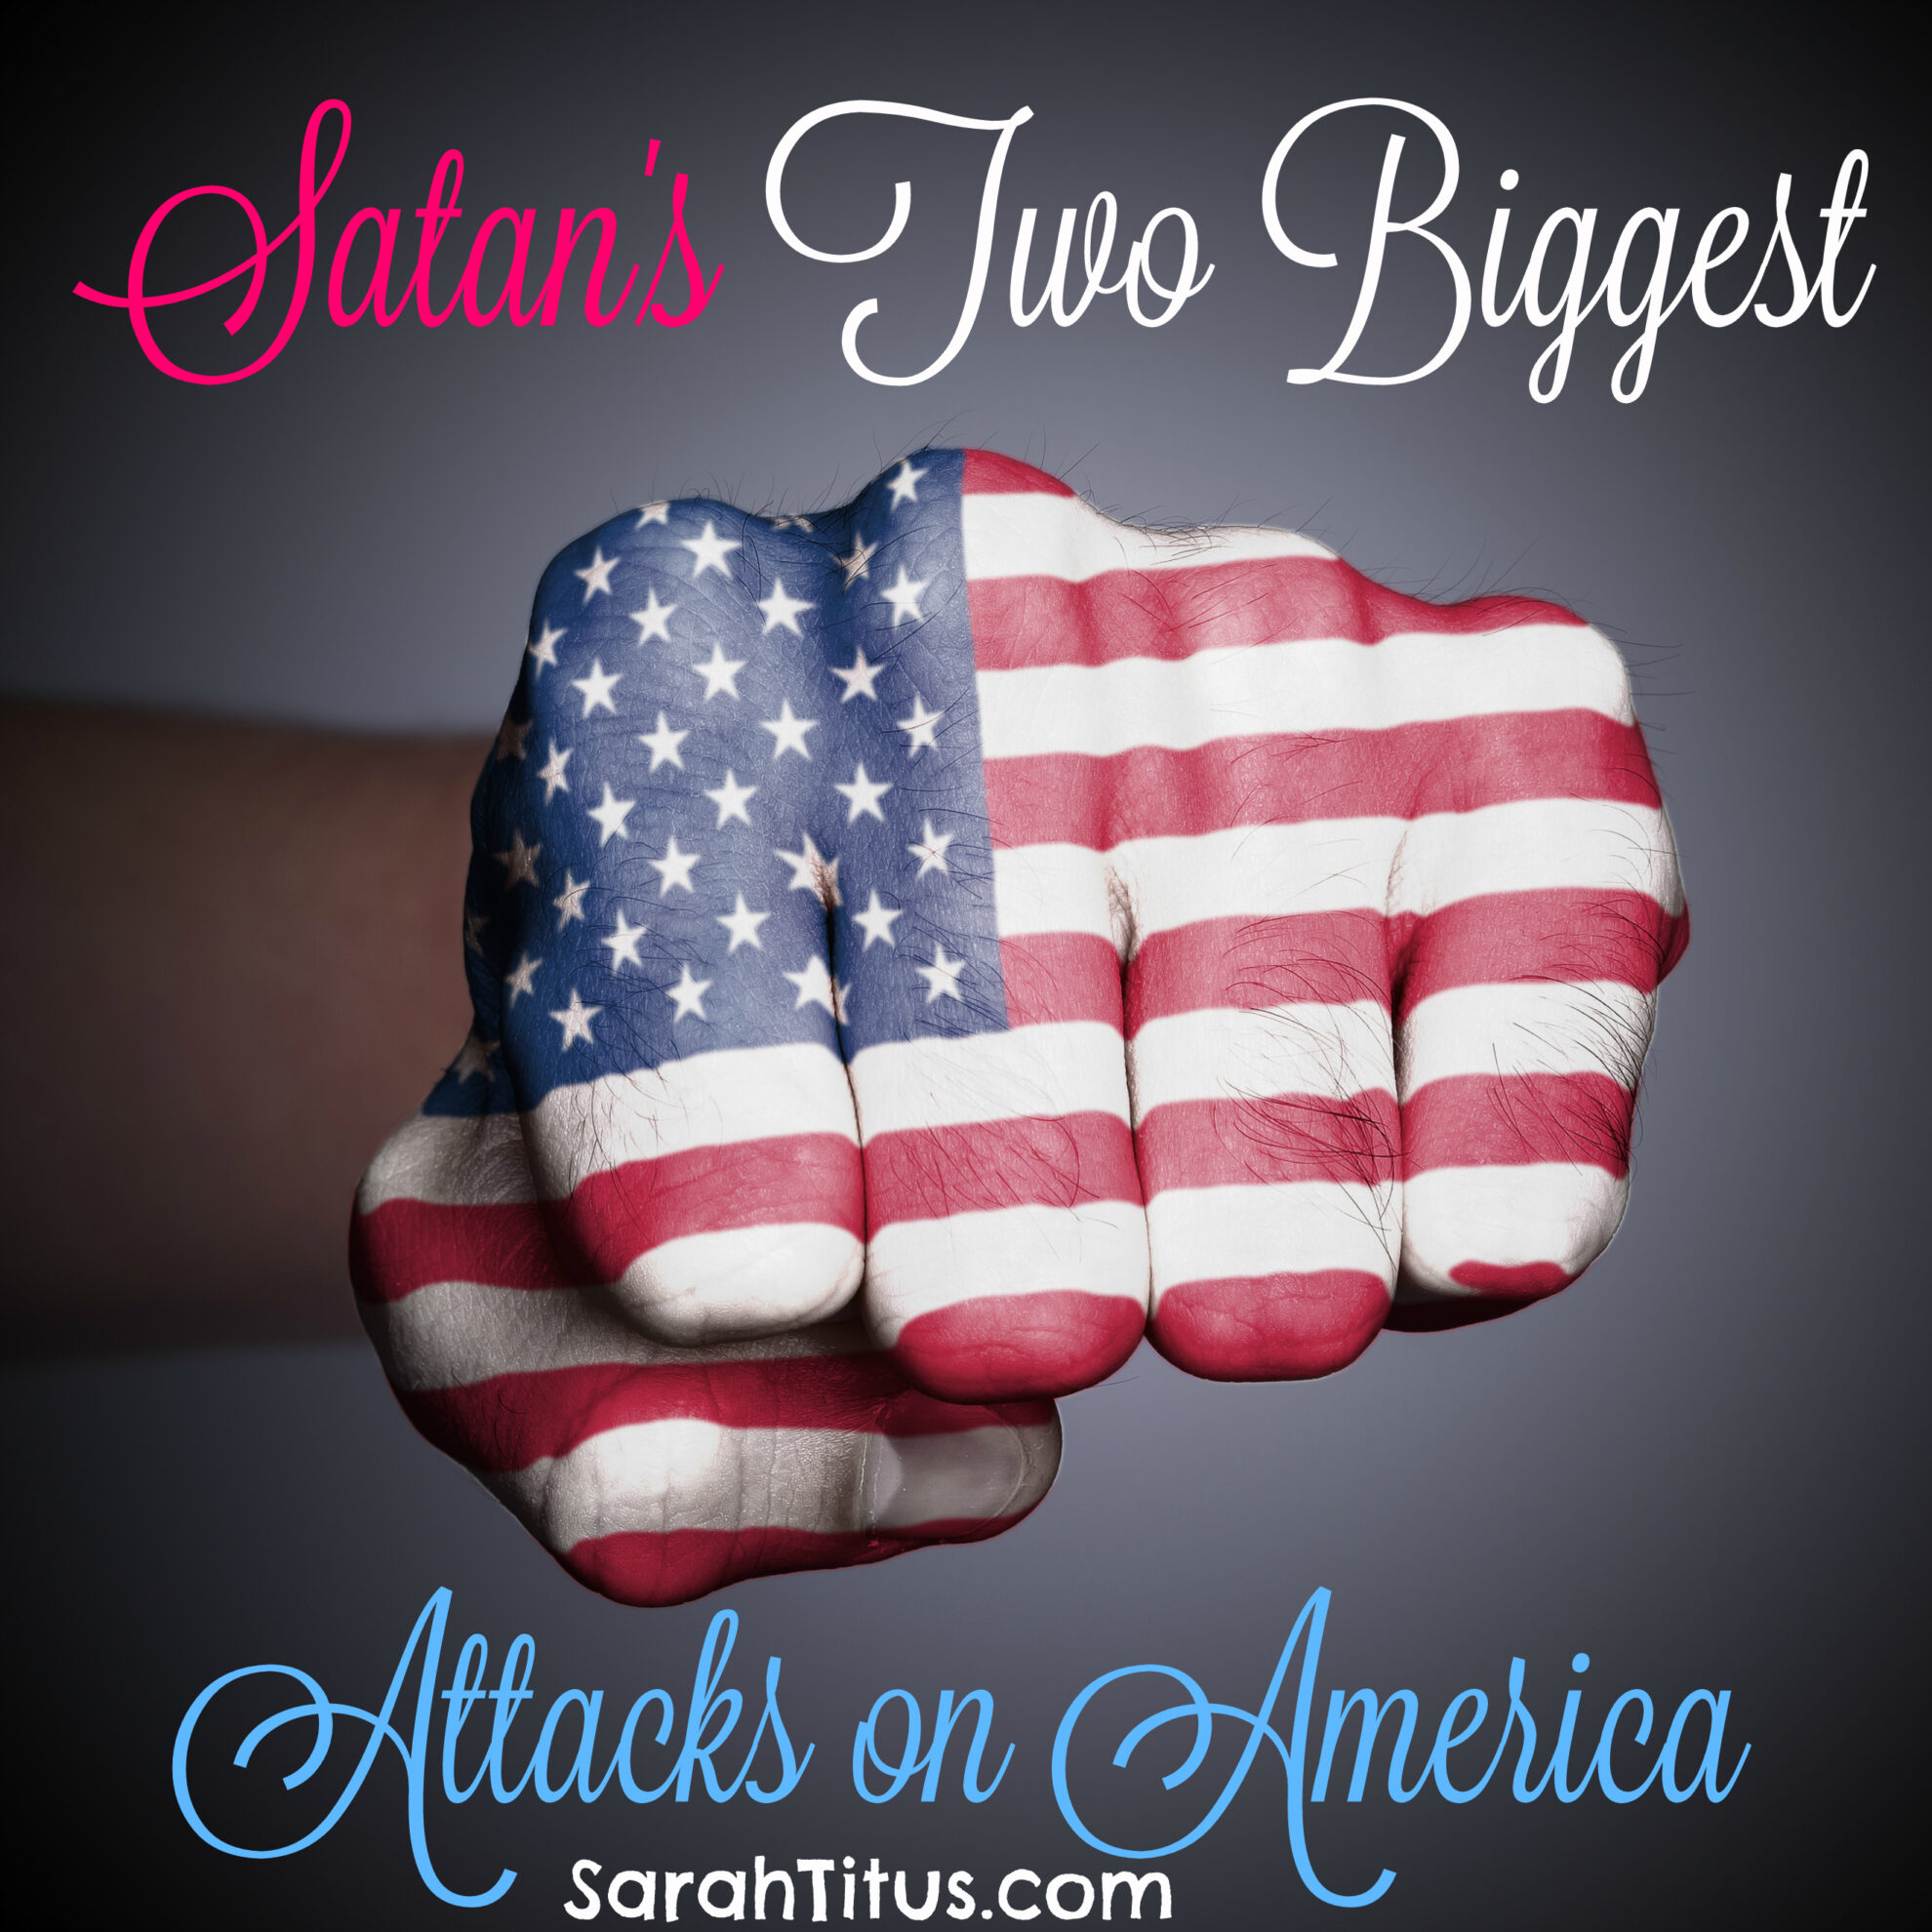 Satan's Two Biggest Attacks on America